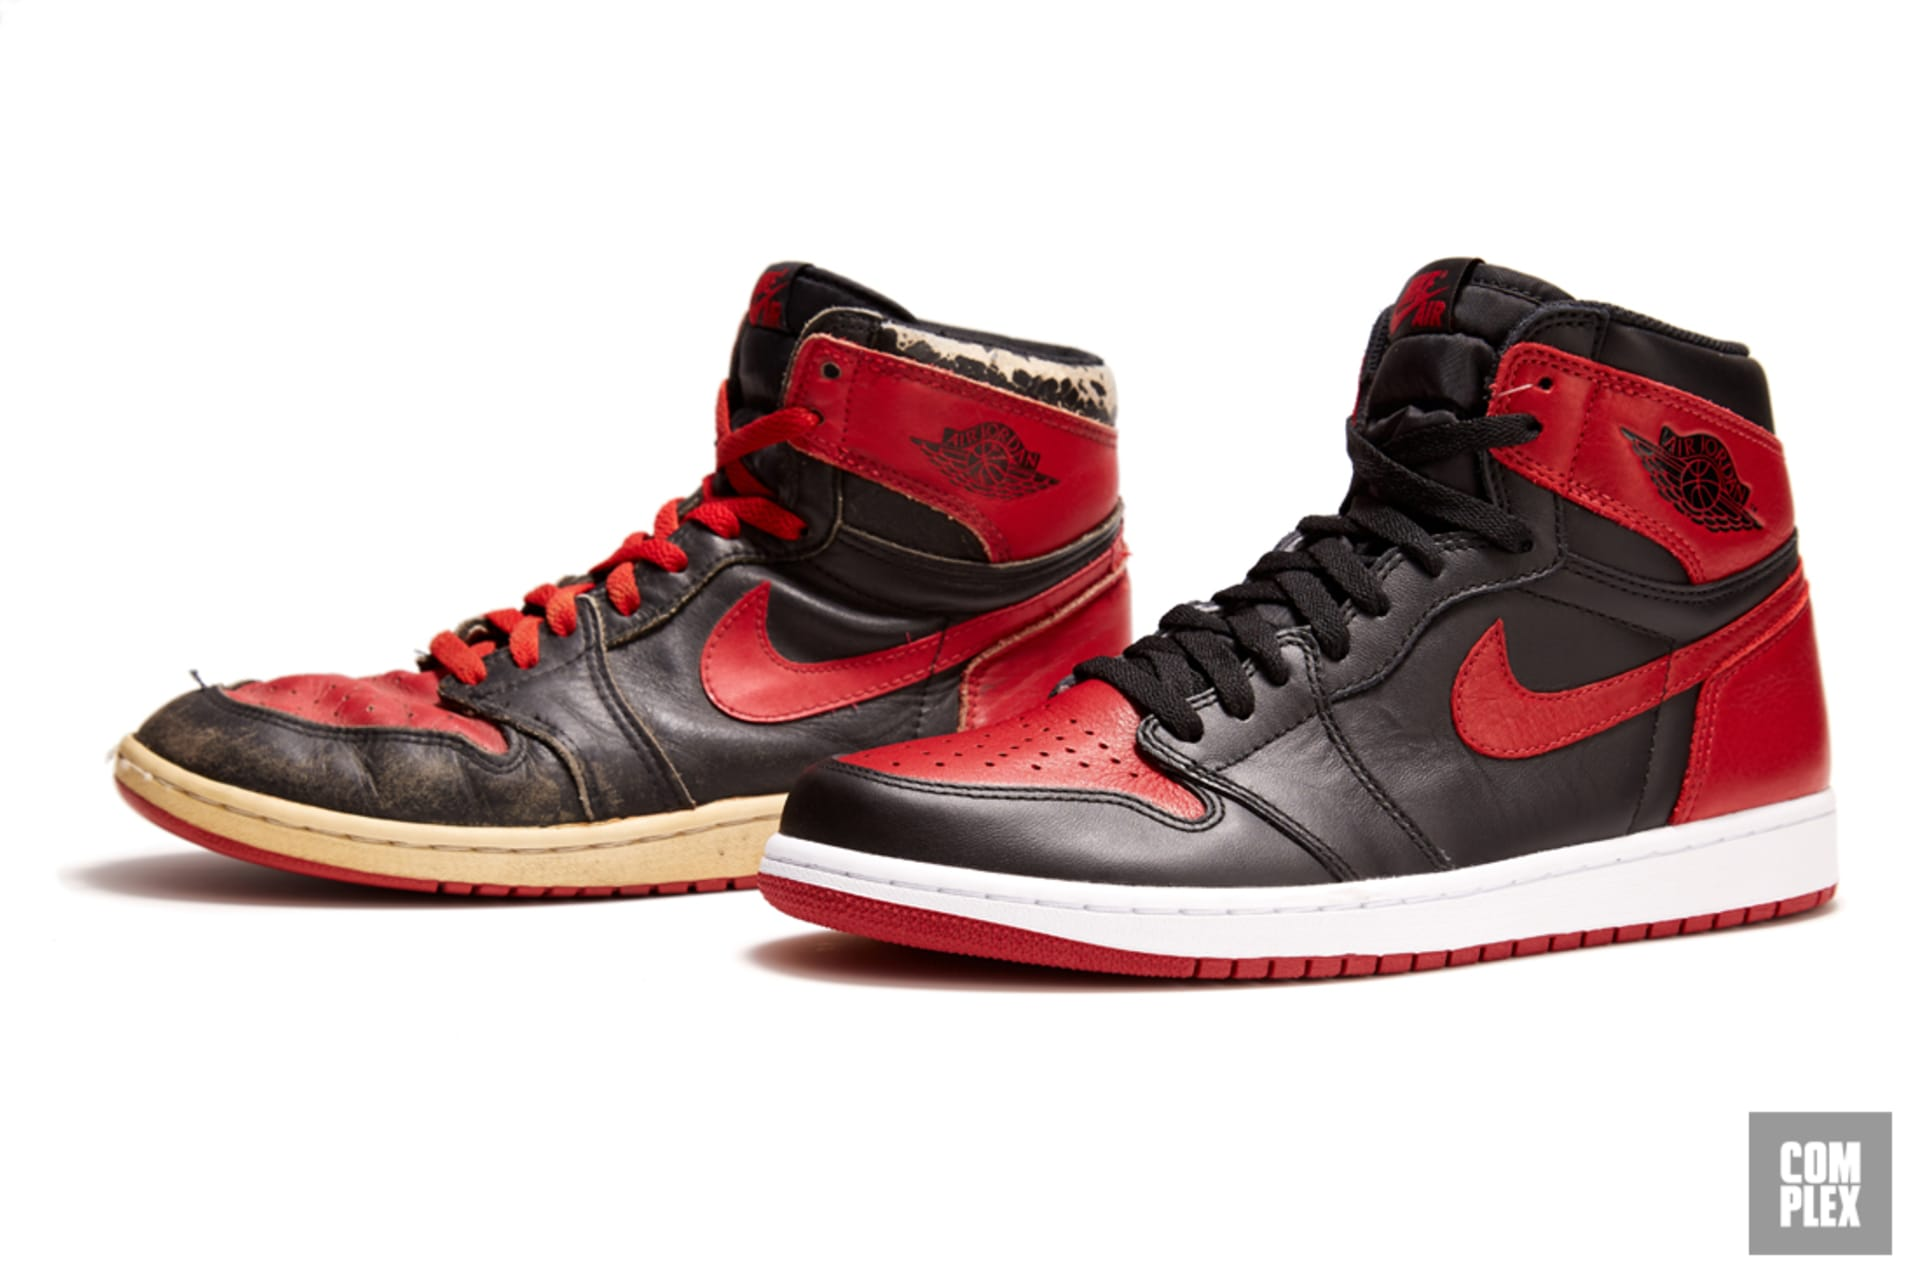 d22d884f45f The Evolution of the Black and Red Air Jordan 1, the Sneaker That ...